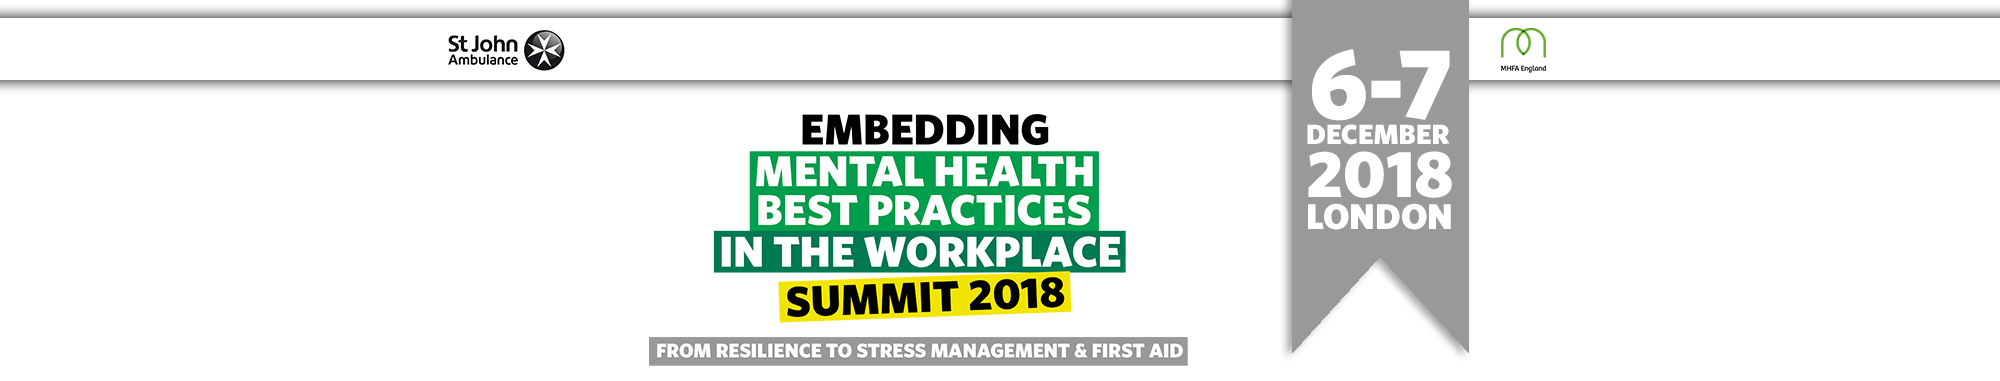 Embedding Mental Health Best Practices Summit 2018